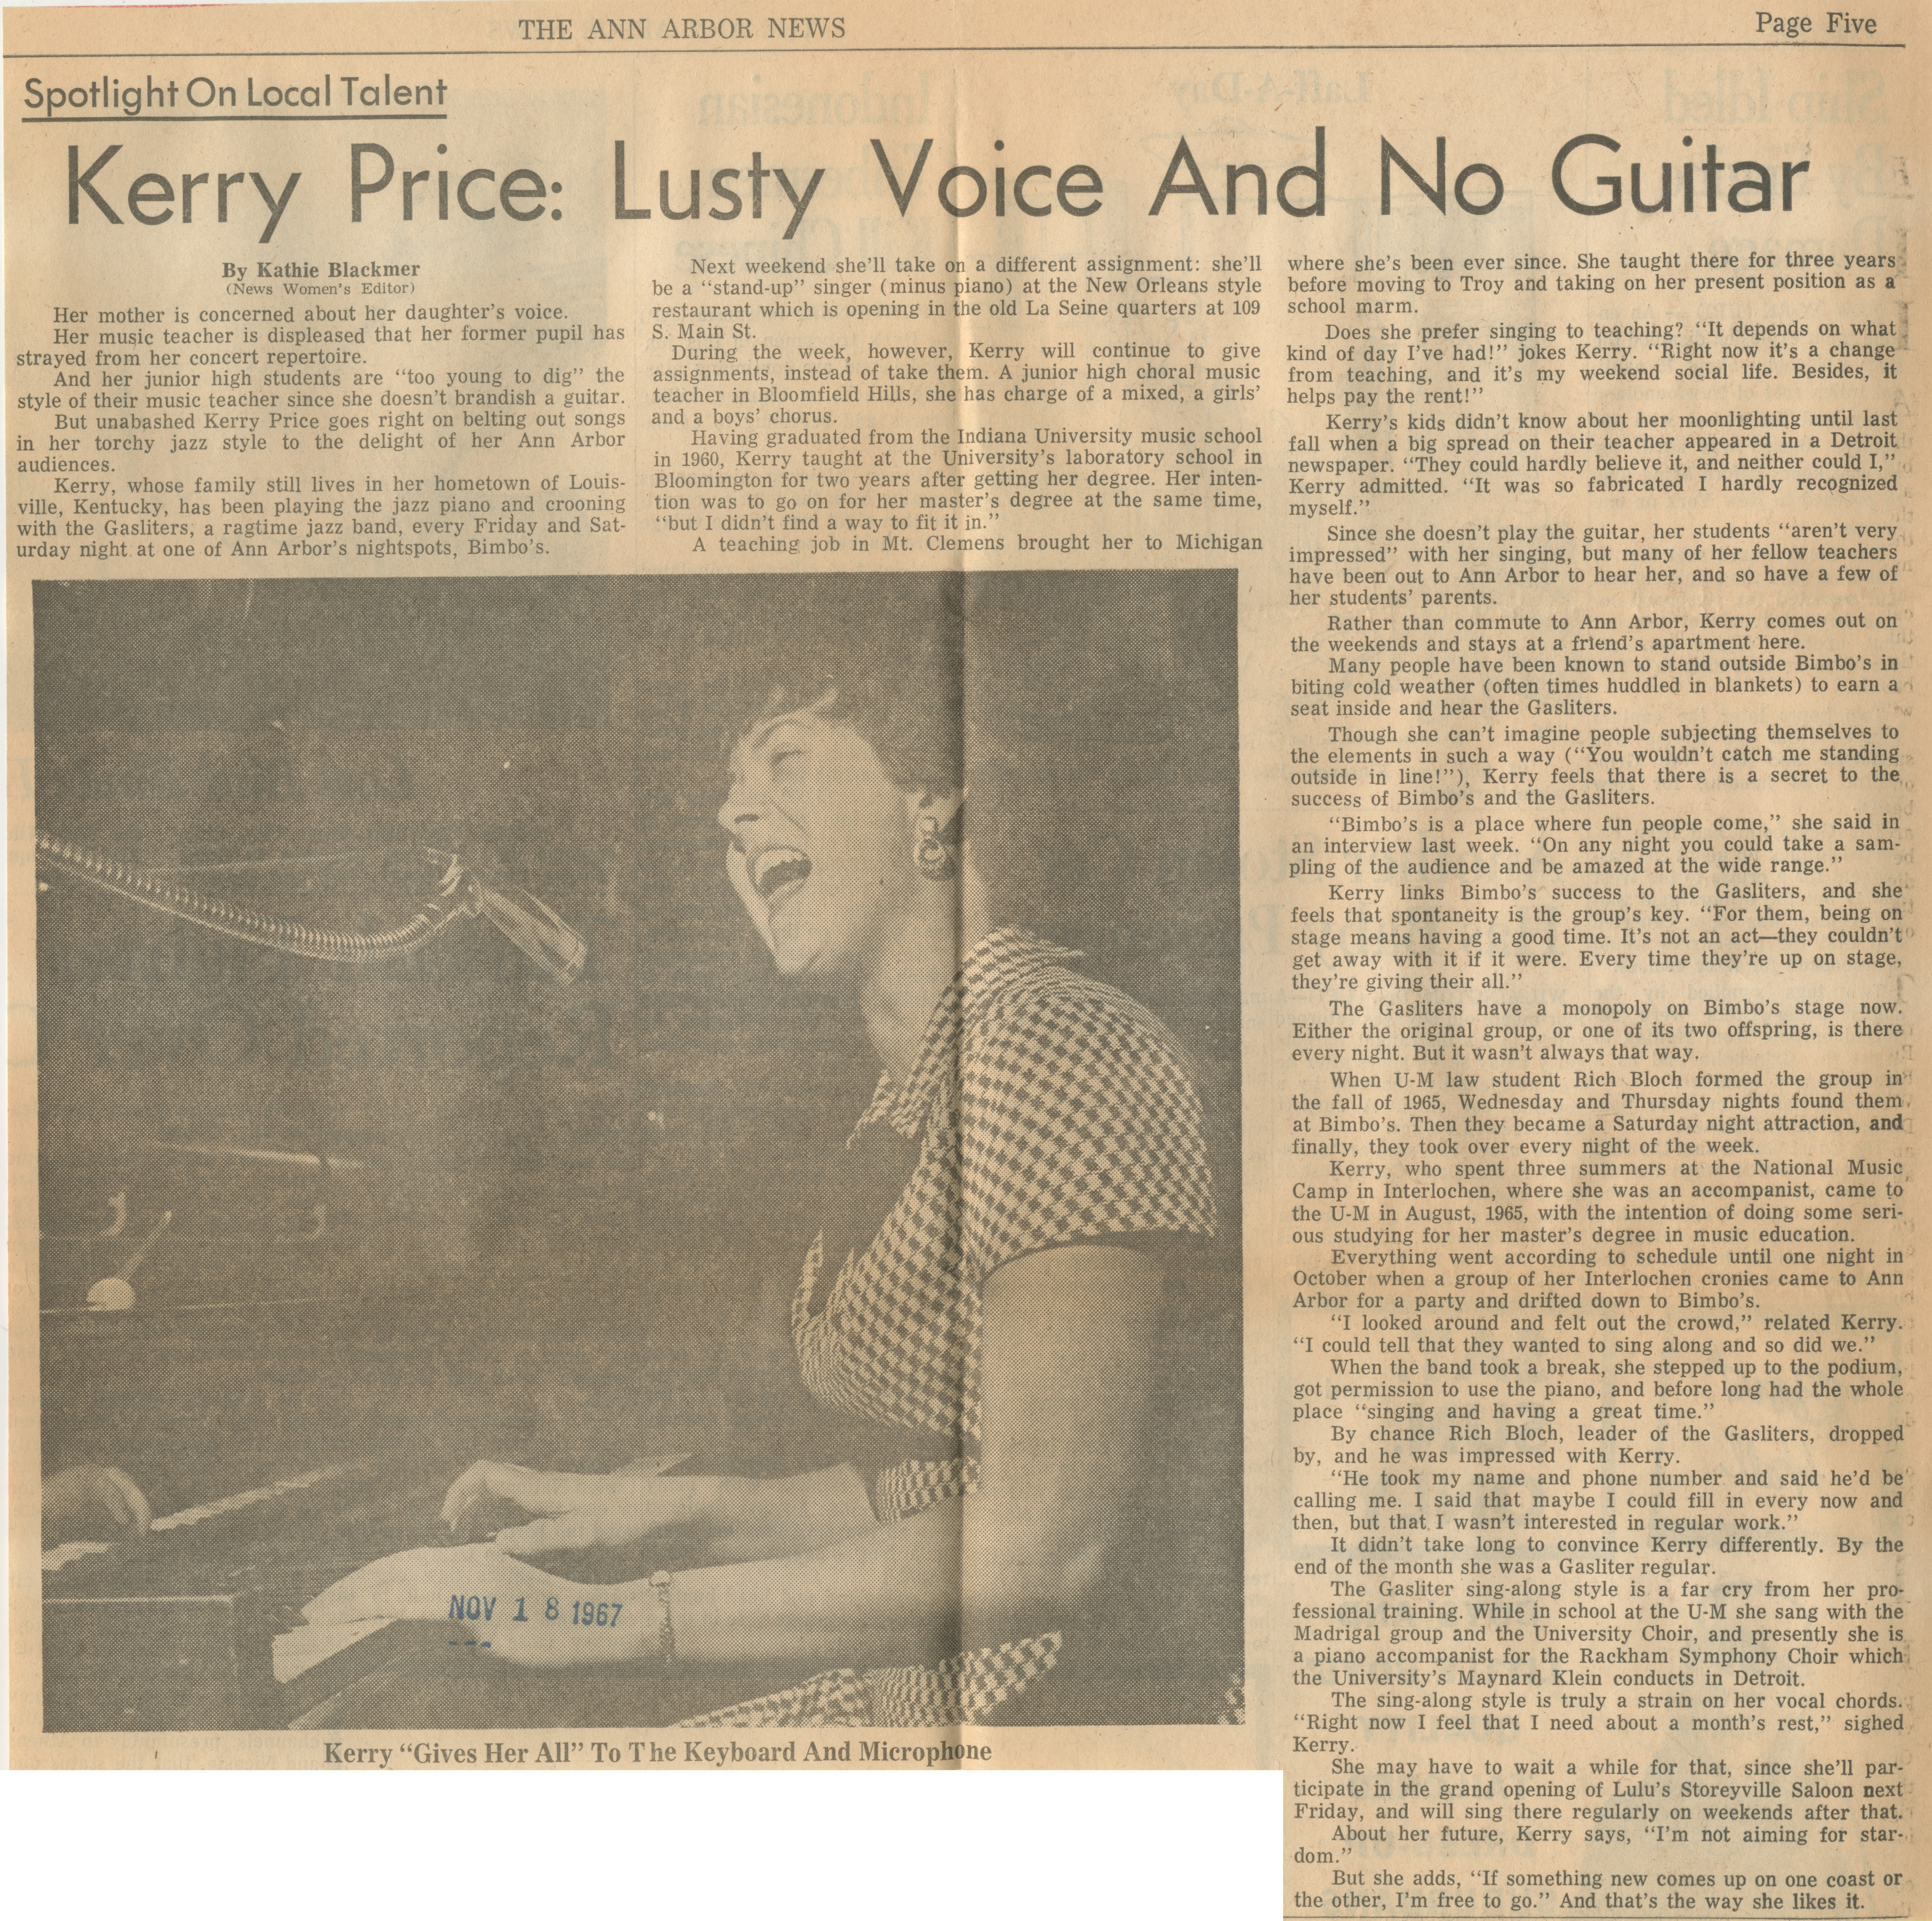 Kerry Price: Lusty Voice And No Guitar image